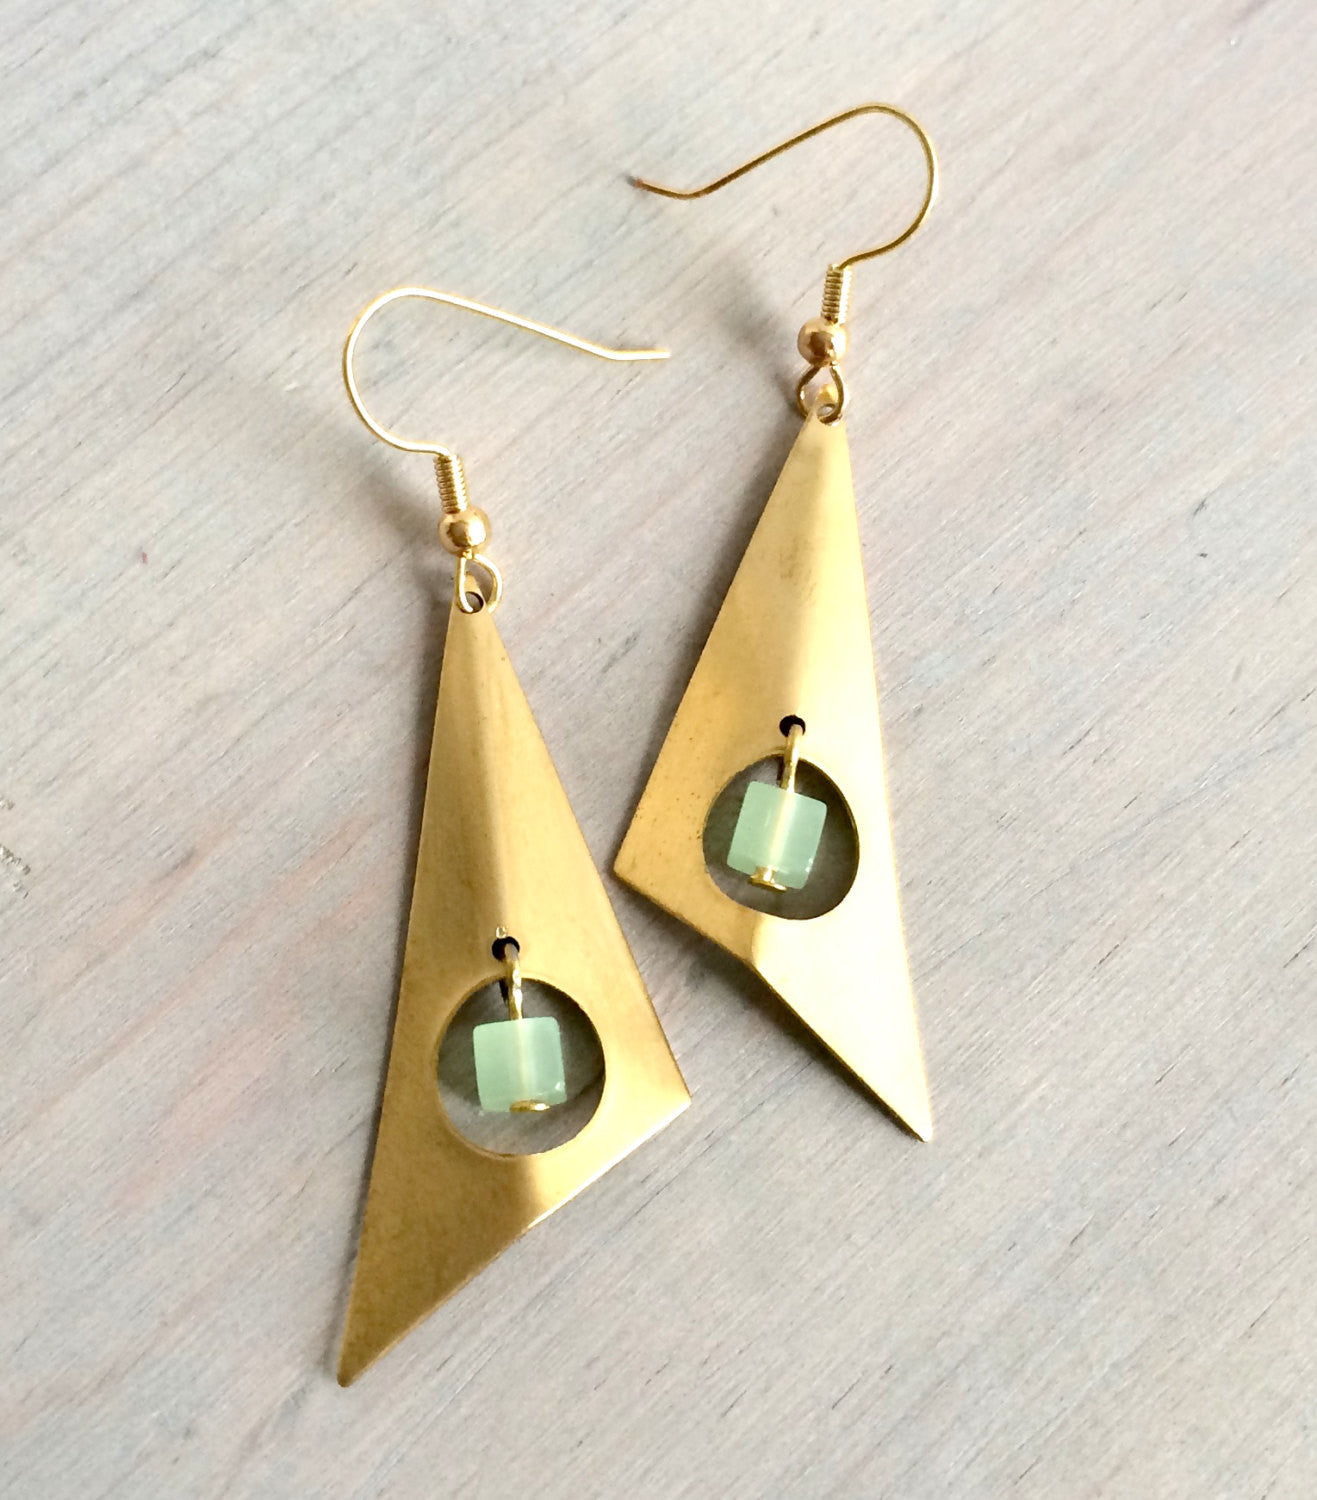 Asymmetrical Geometric Dangle Earrings